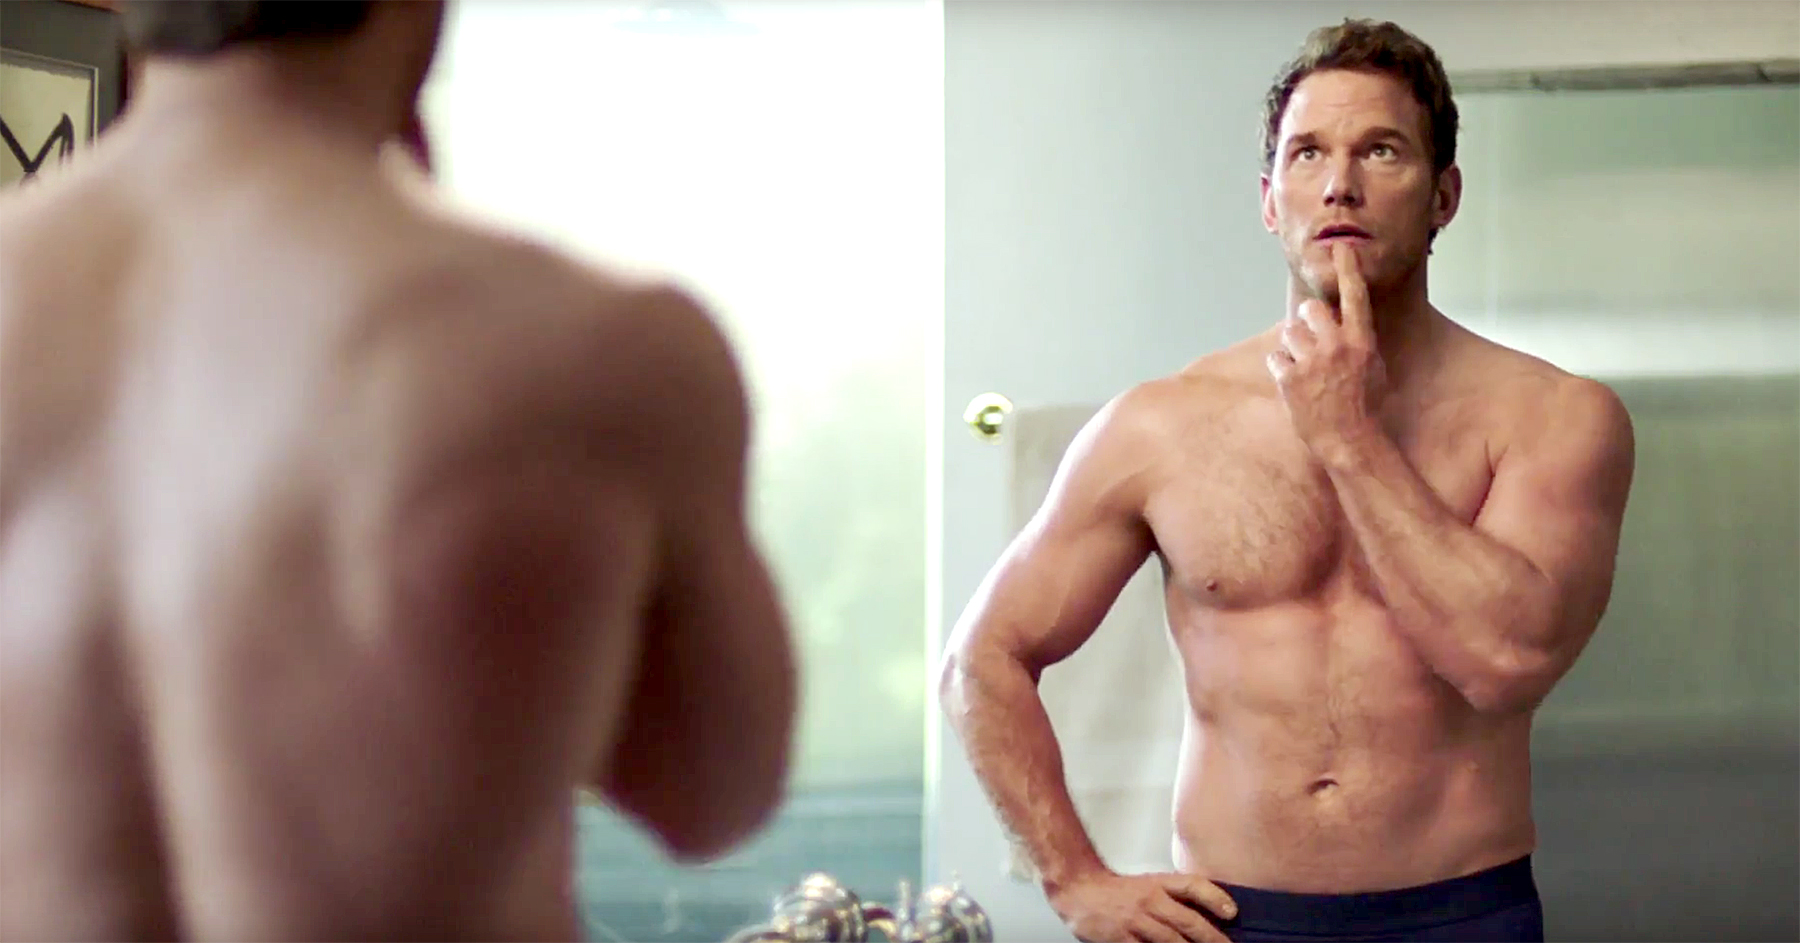 Chris Pratt flaunts ripped body in new Super Bowl ad